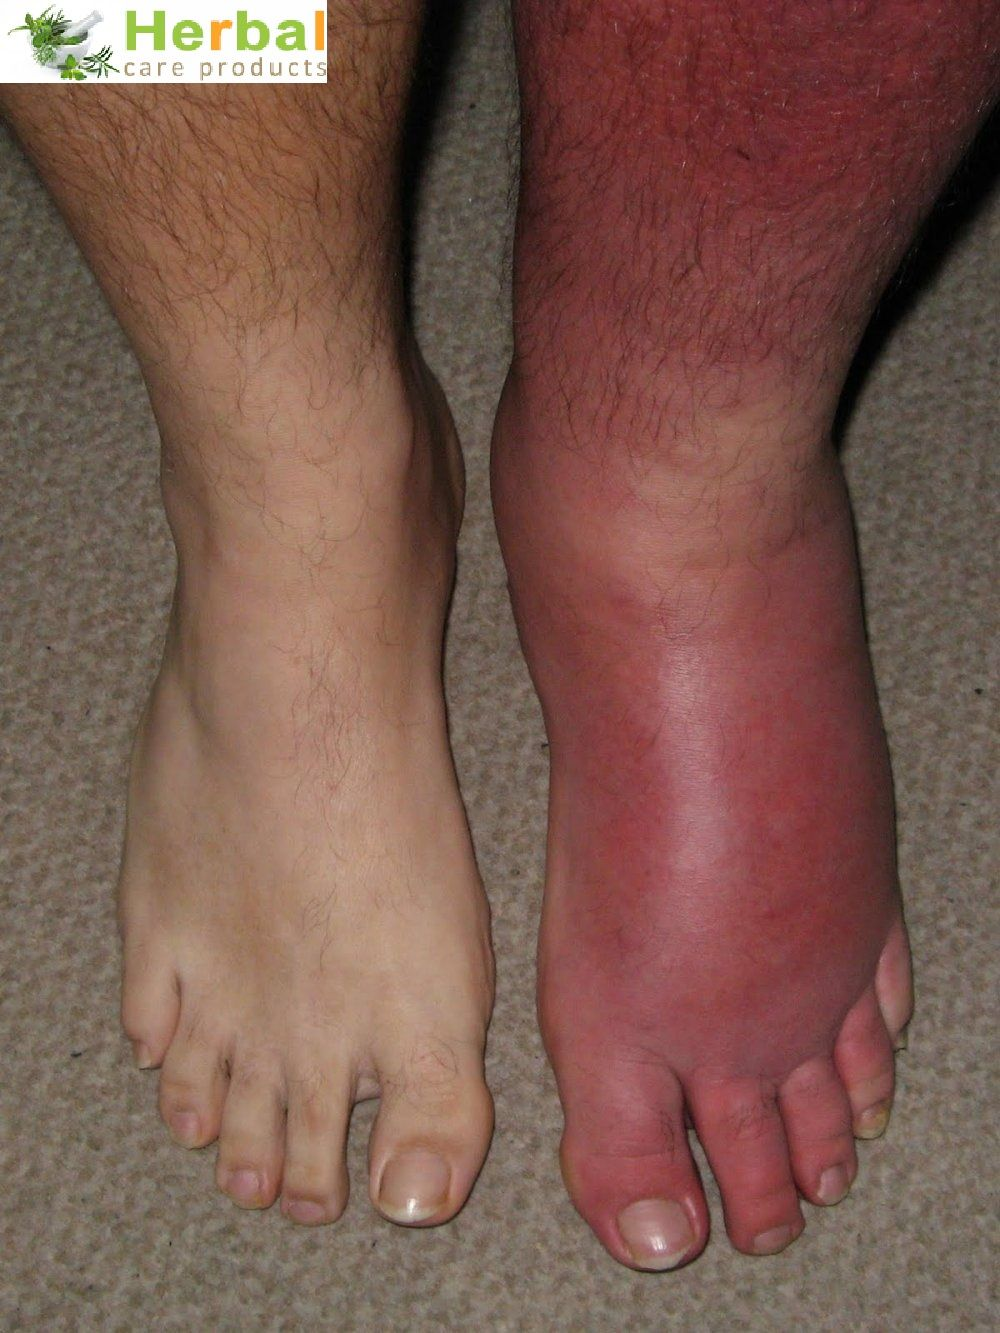 Cellulitis Signs, Symptoms, and Diagnosis